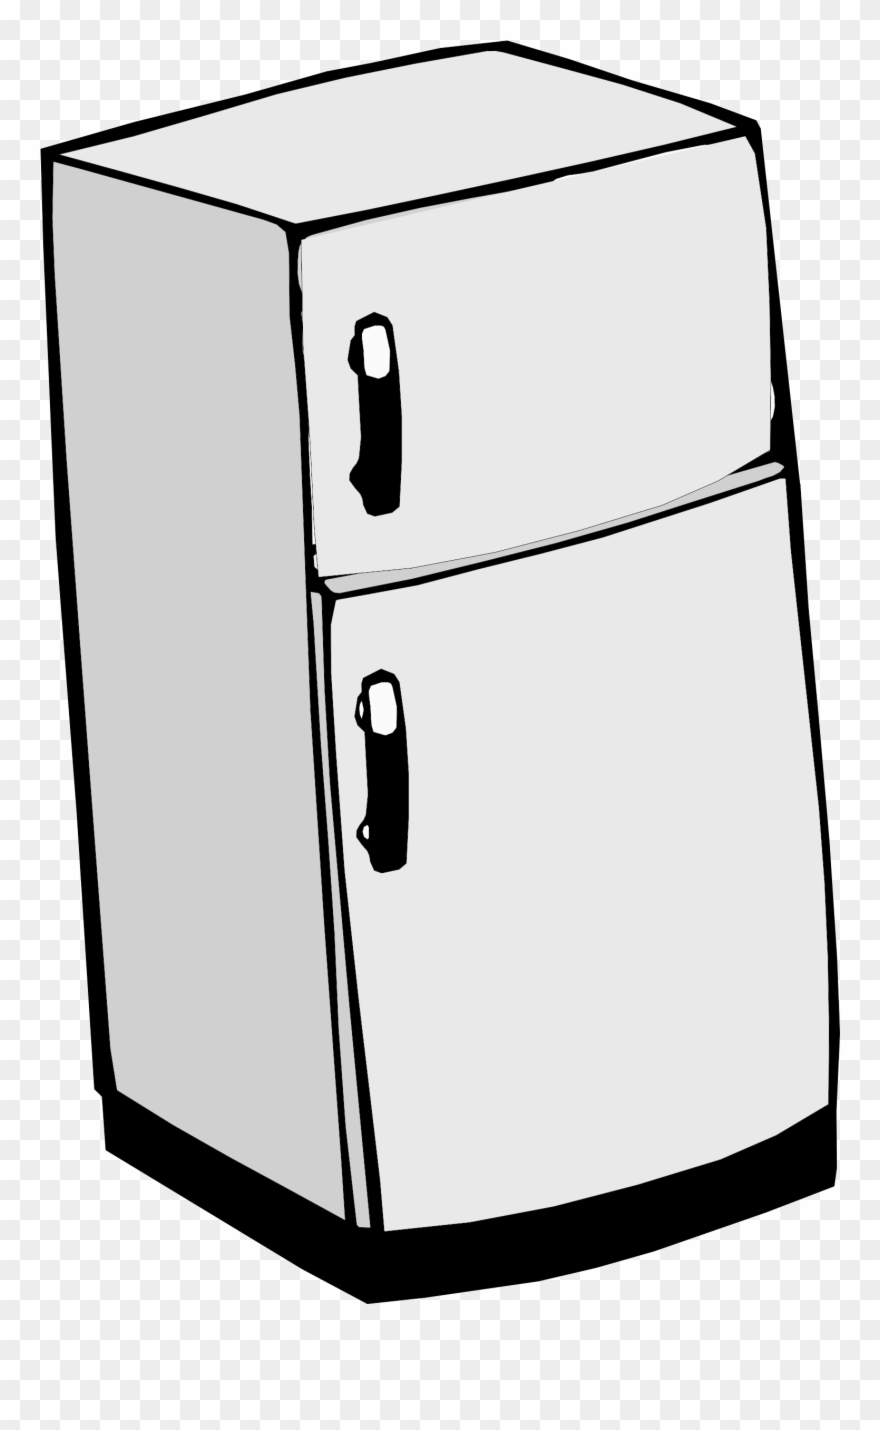 Clipart Of Charles, Ideal And Fridge.